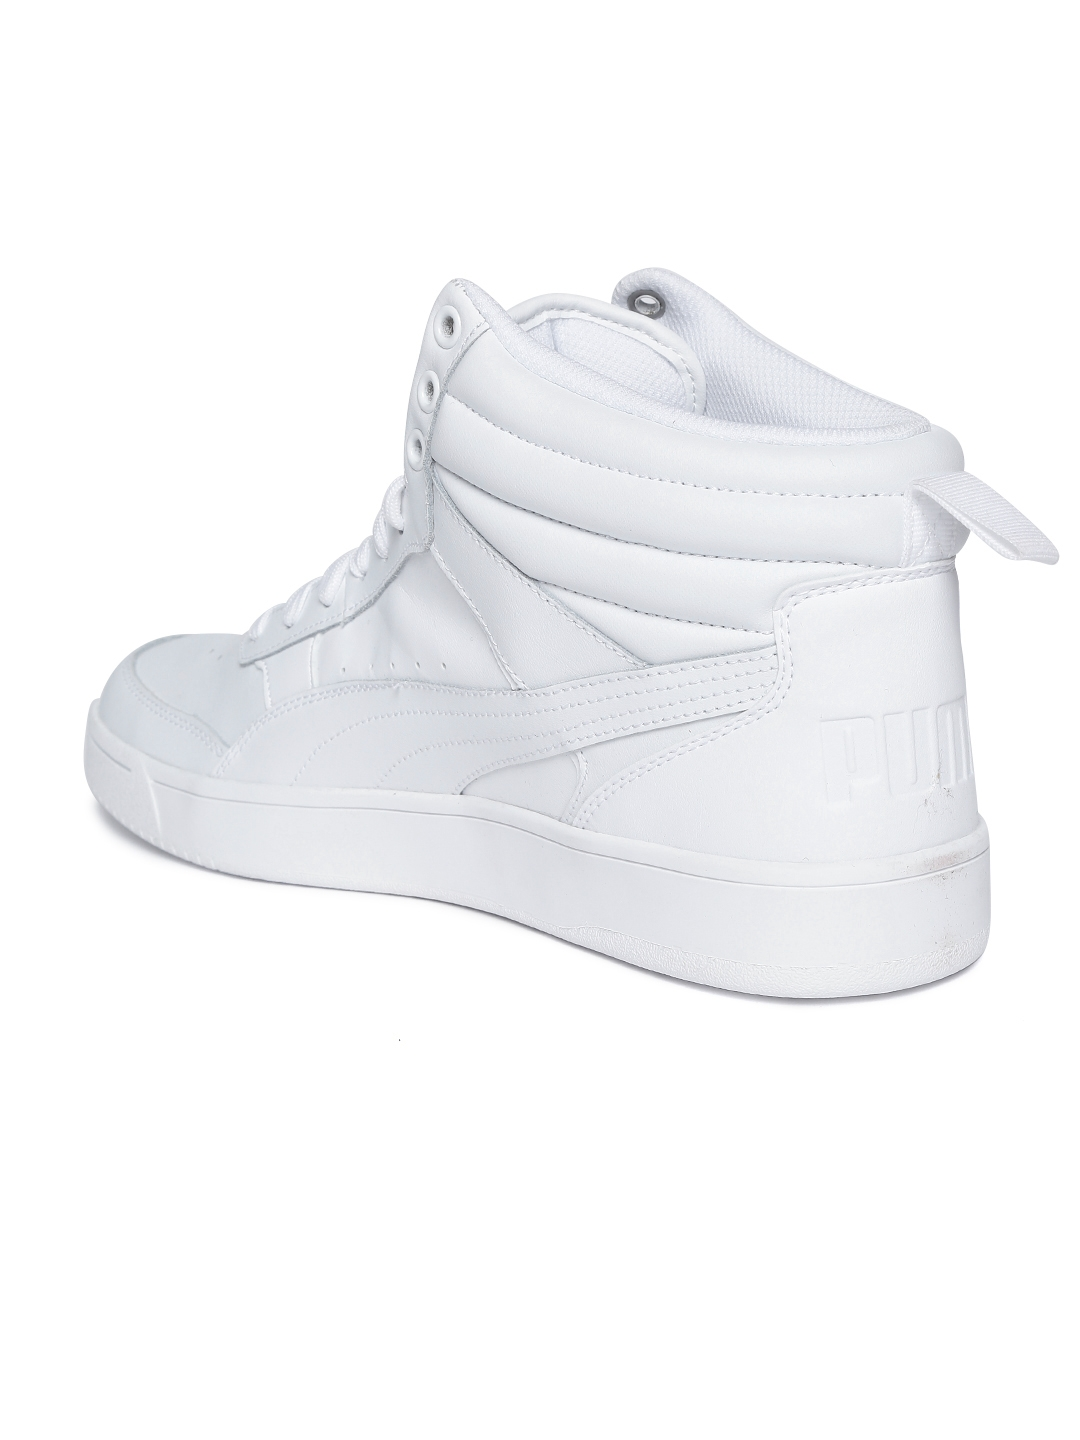 e4c8e2807b2 Buy Puma Men White Solid Rebound Street V2 Leather Mid Top Sneakers ...